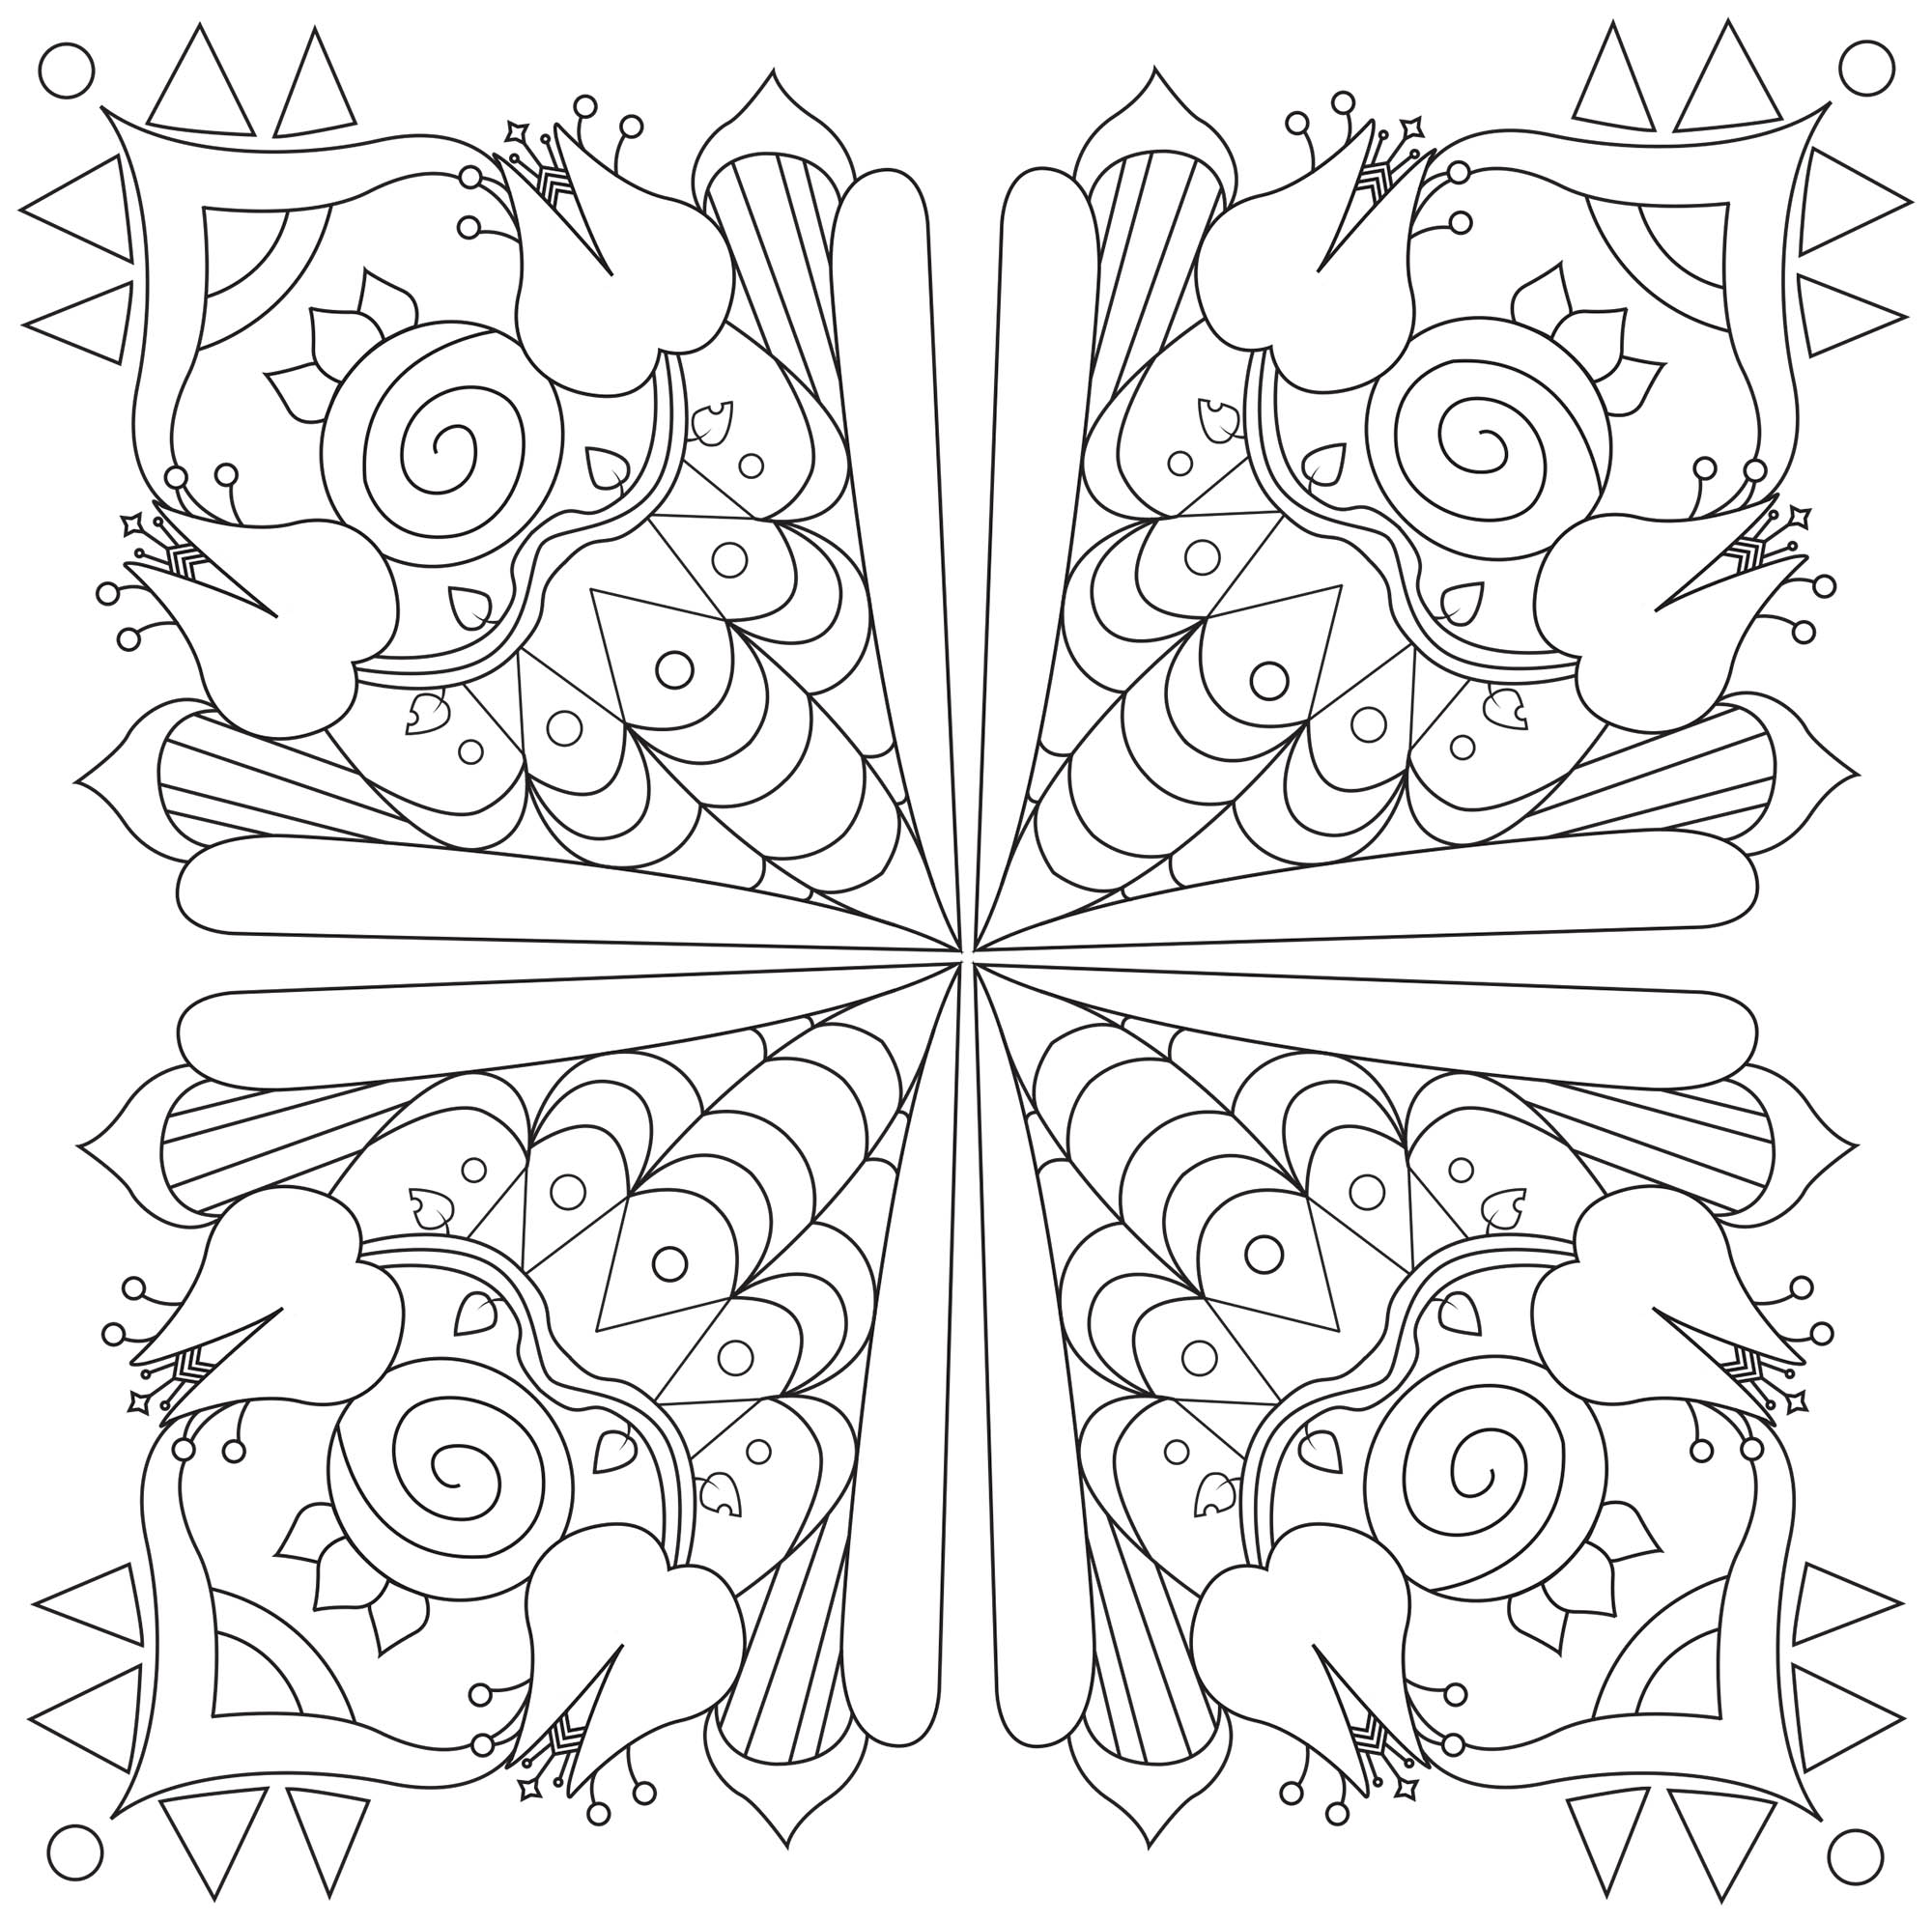 Mandala with abstract patterns